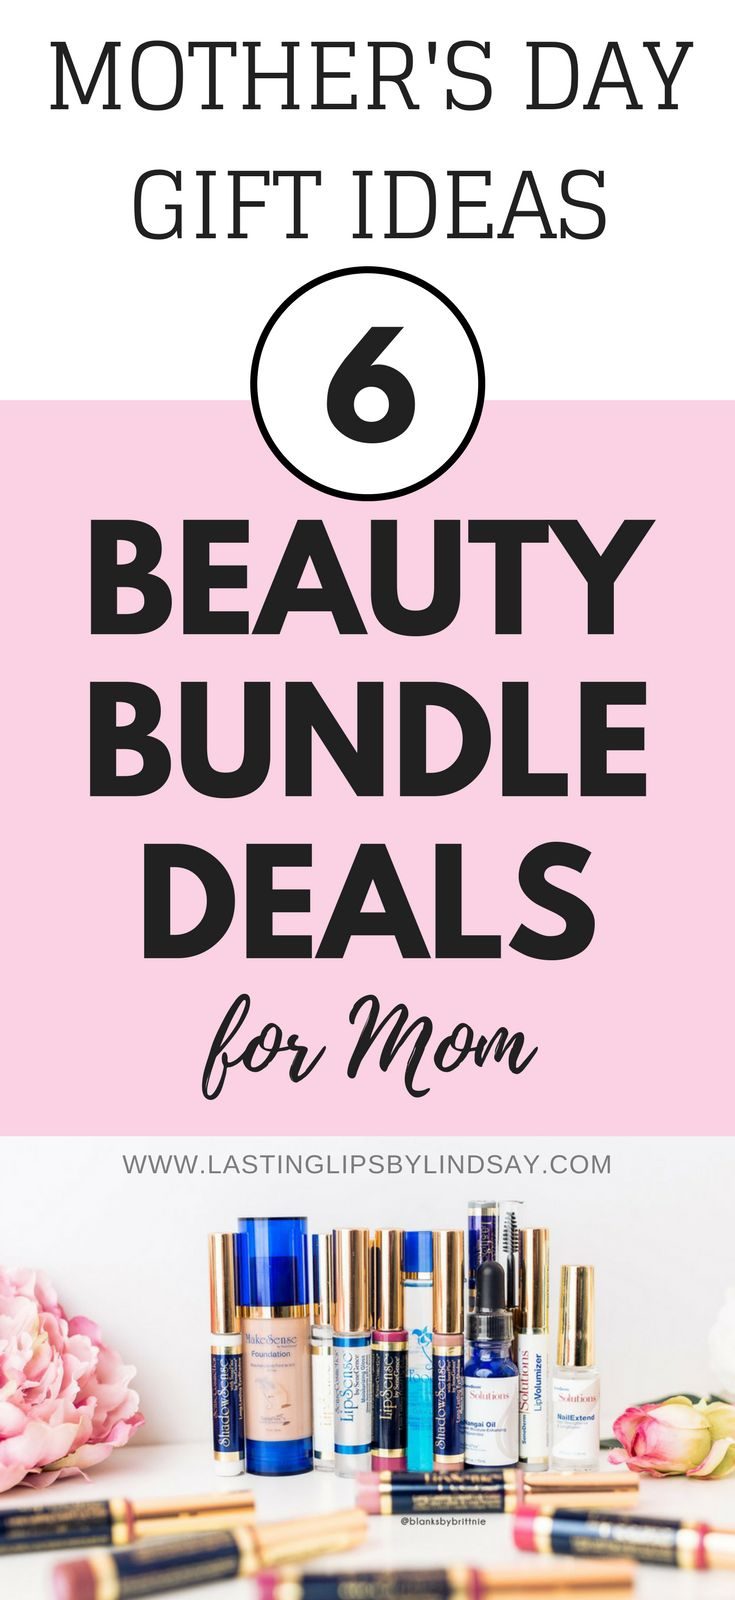 Are you looking for Mother's Day gift ideas for mom? I've put together 6 beauty bundles that would be perfect for pampering that special lady in your life. Everything from long-lasting lipstick, to cleansers, skincare, and long-lasting makeup to help her feel beautiful on the inside and out. www.lastinglipsbylindsay.com | LipSense distributor | SeneGence | ShadowSense | beauty products | makeover | anti-aging | best mother's day gifts | LipSense Starter Kit | lipgloss | eyeshadow | gifts for…